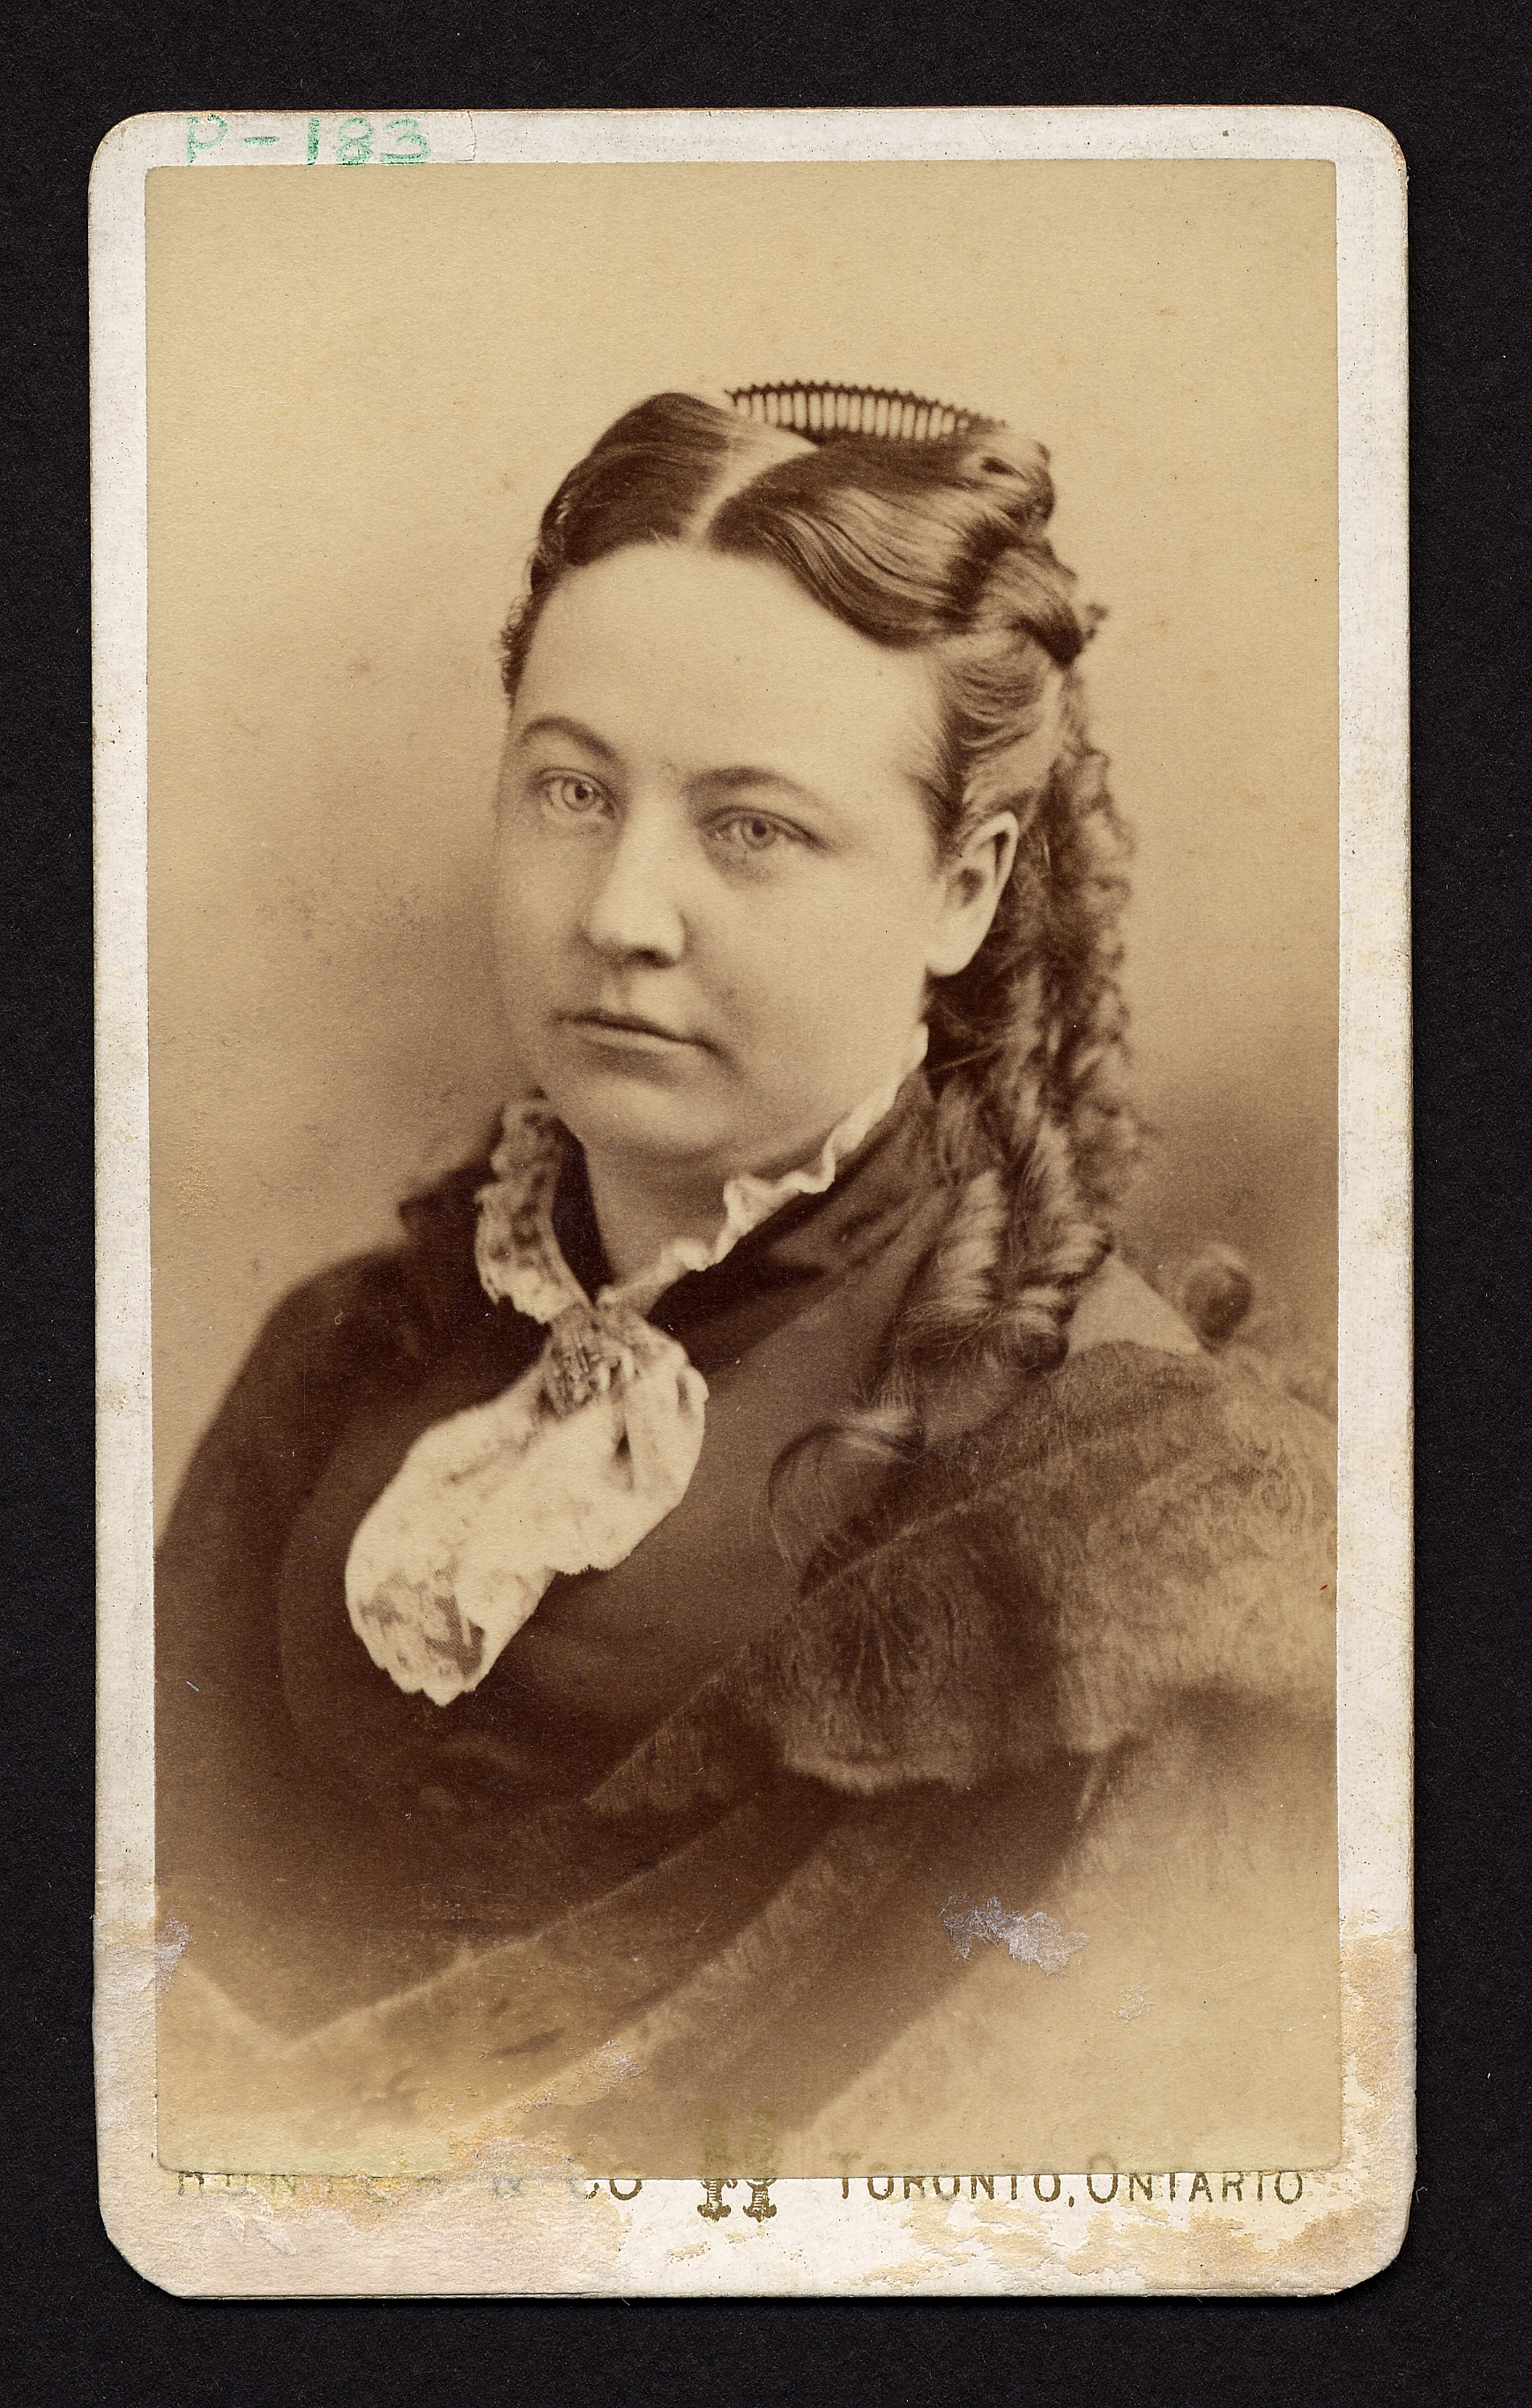 Portrait of Jennie Kidd Trout, who graduated from the Woman's Medical College of Pennsylvania in 1875. Photo courtesy Legacy Center Archives, Drexel College of Medicine.